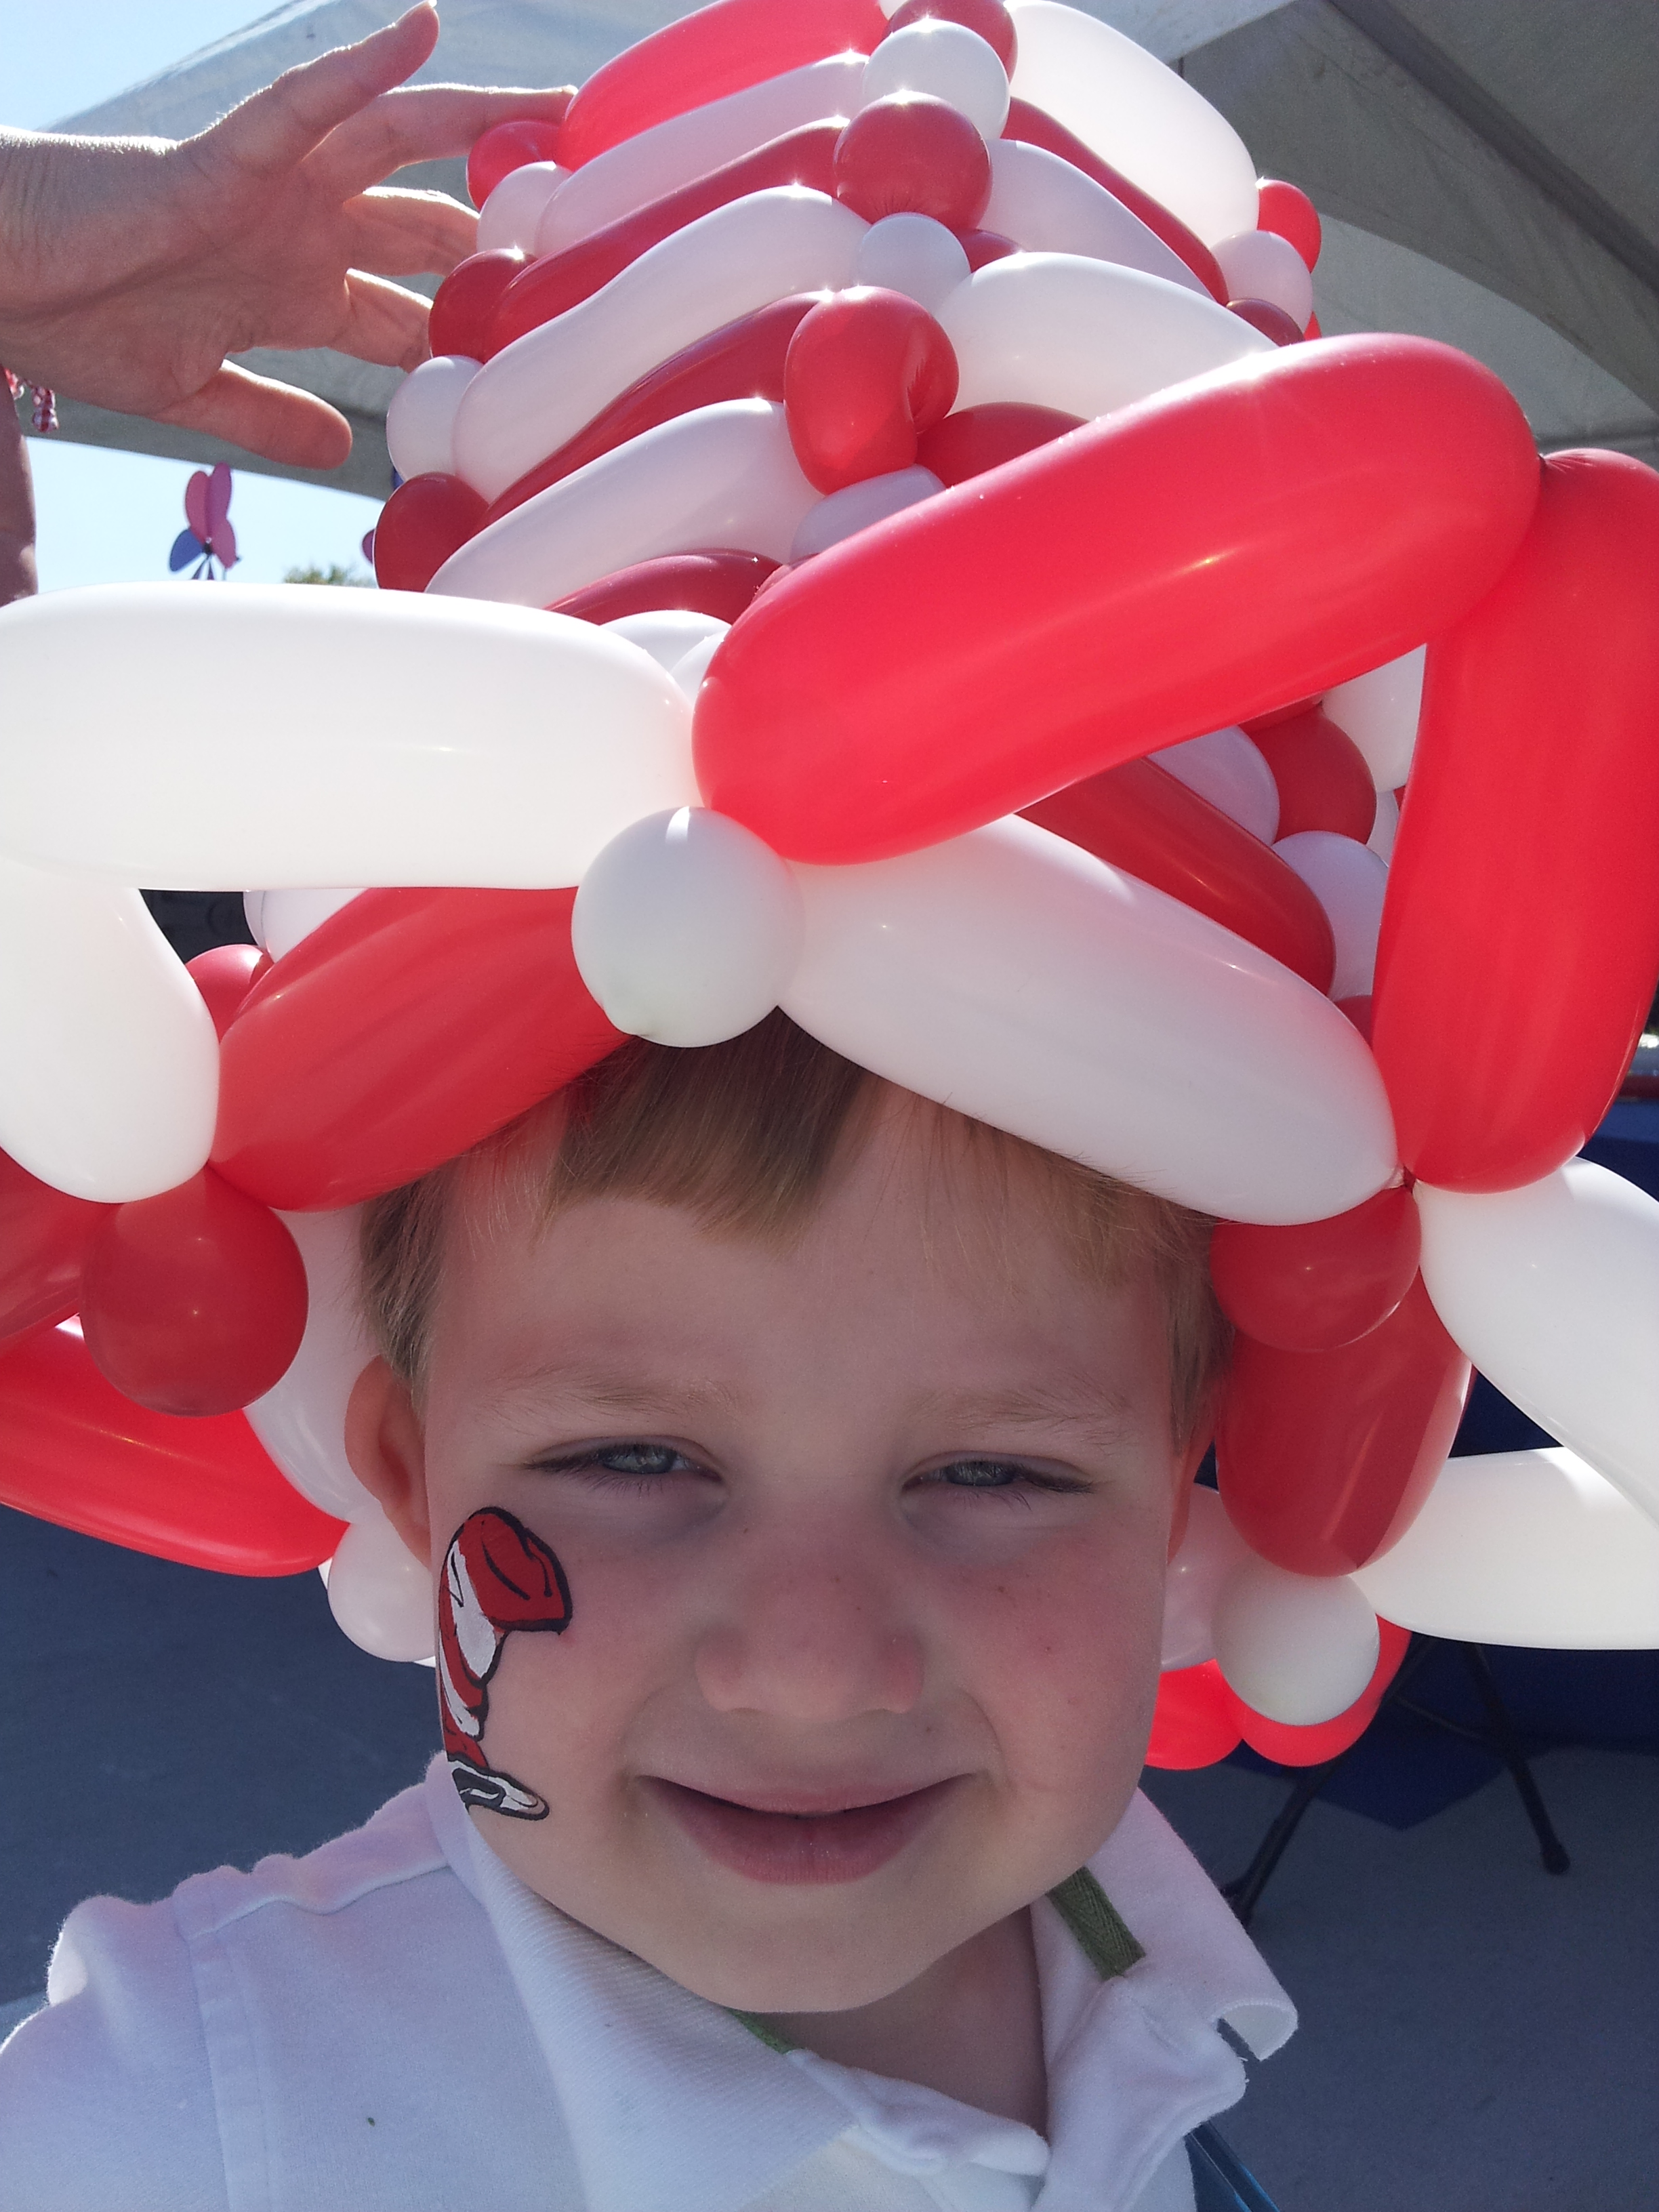 Cat in the hat balloon art